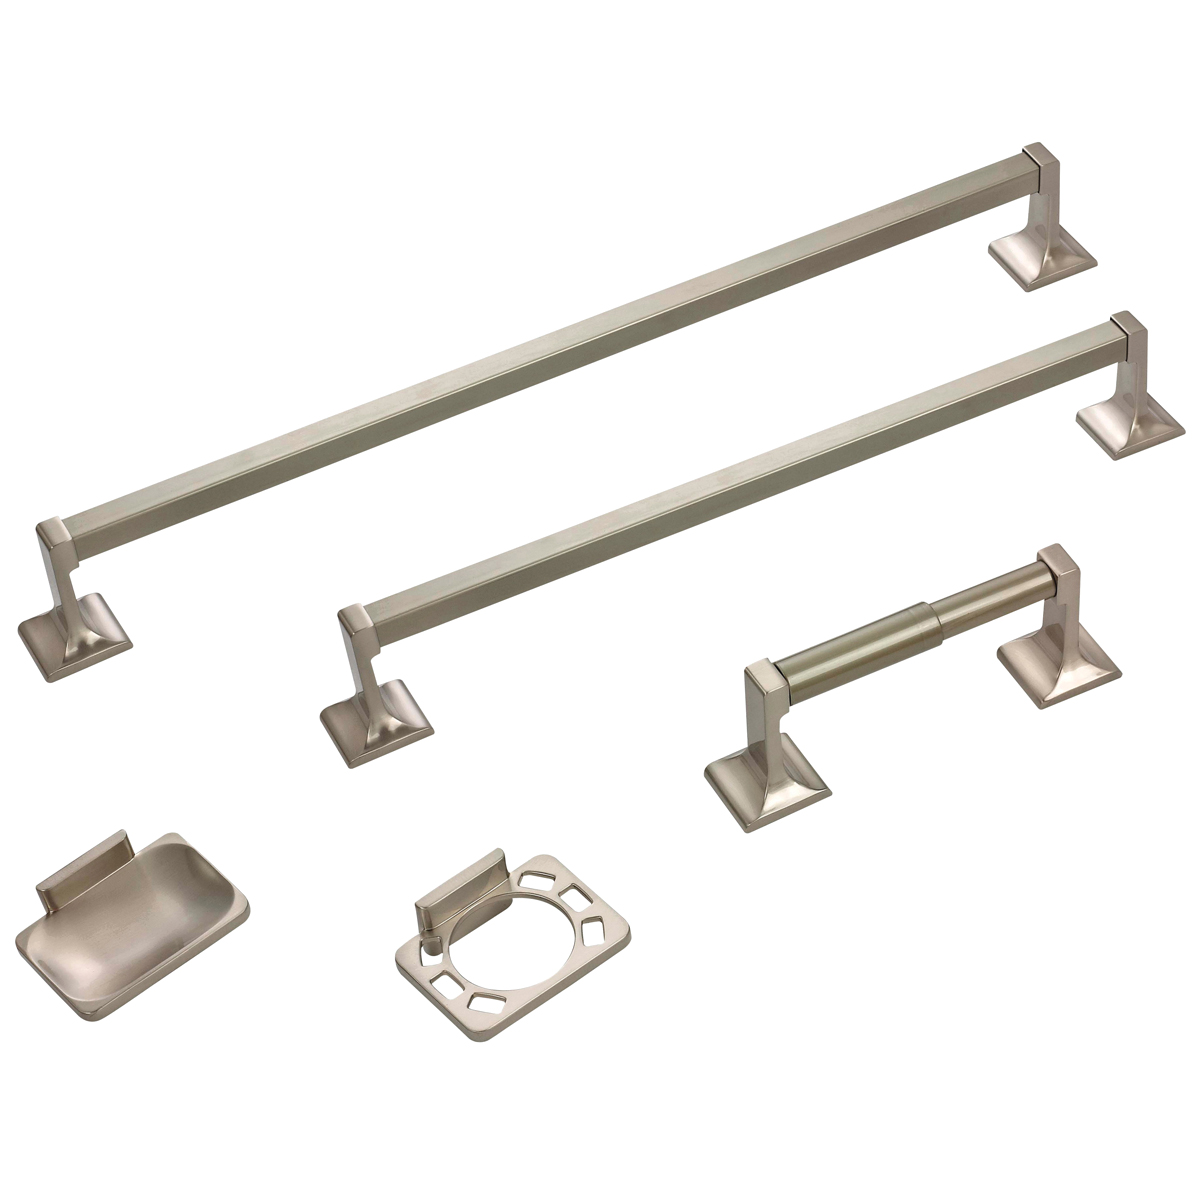 Picture of Boston Harbor 07-SOU-BN Bathroom Accessory Set, Brushed Nickel, Brushed Nickel, 5-Piece, For: Bathroom